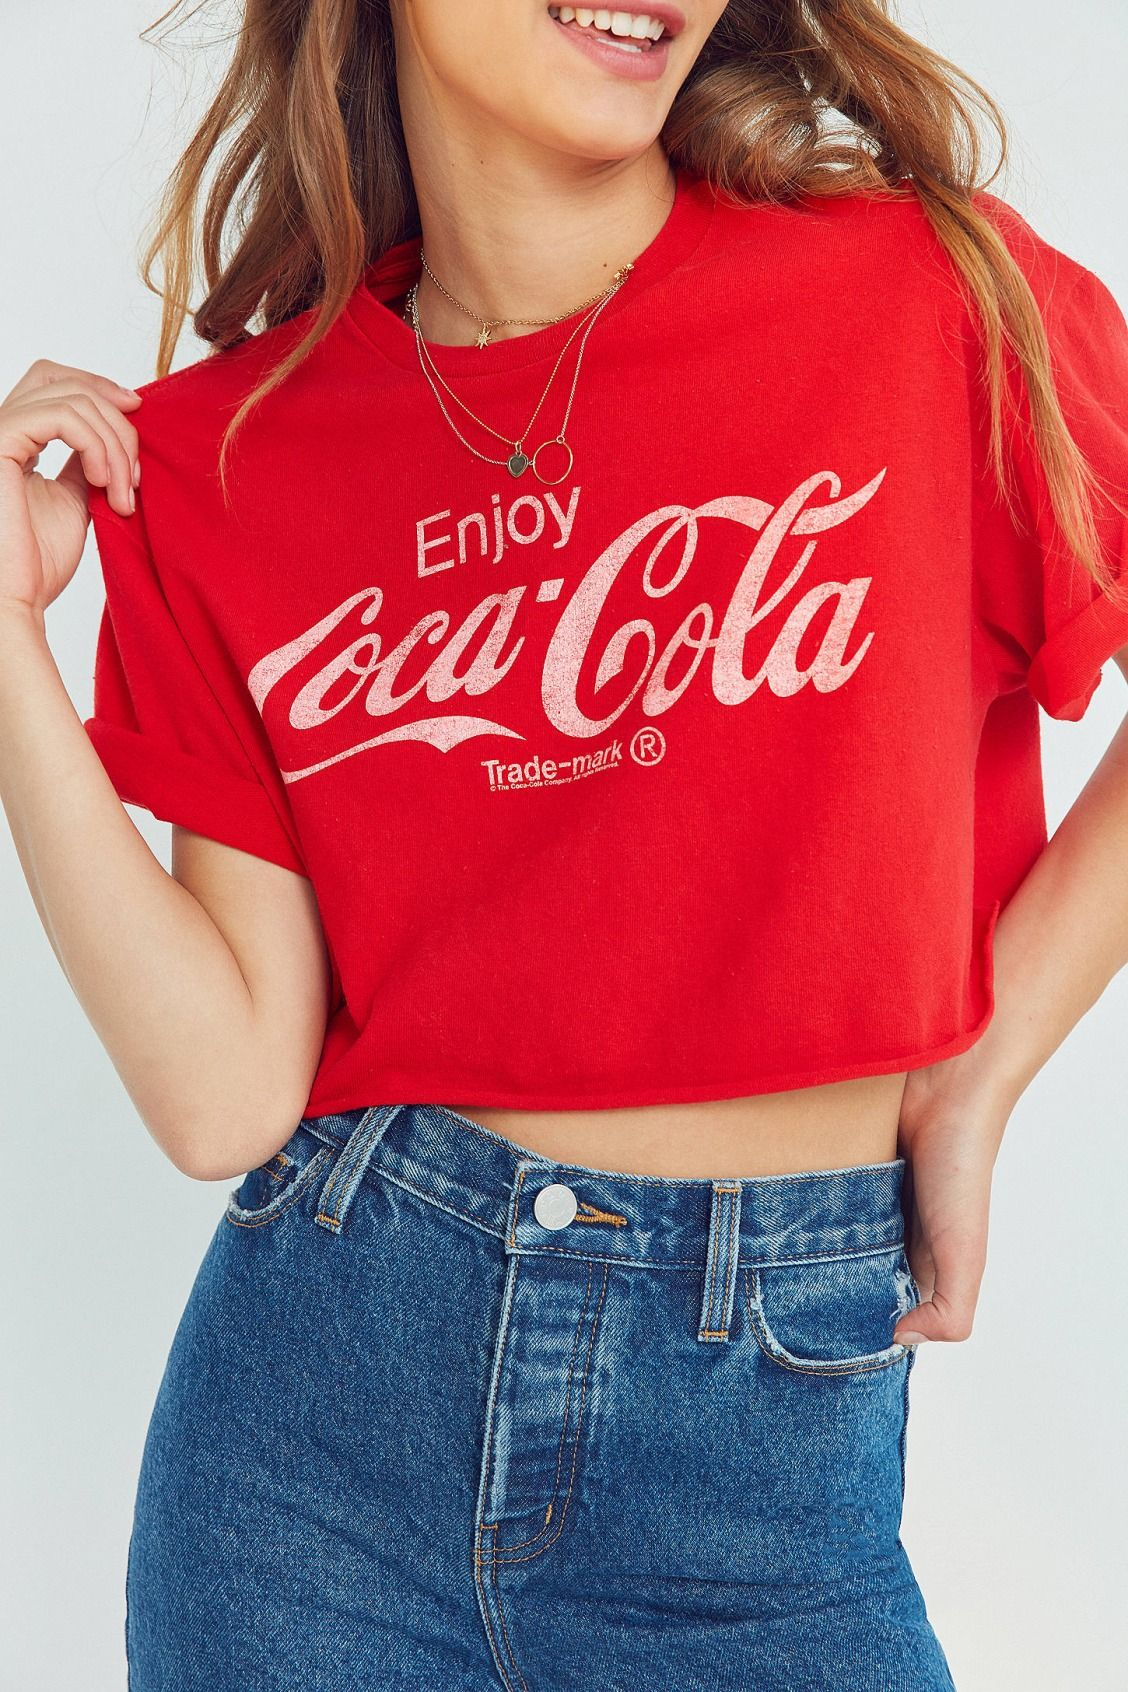 15e7efc53d2bc Slide View  1  Junk Food Coca-Cola Cropped Tee